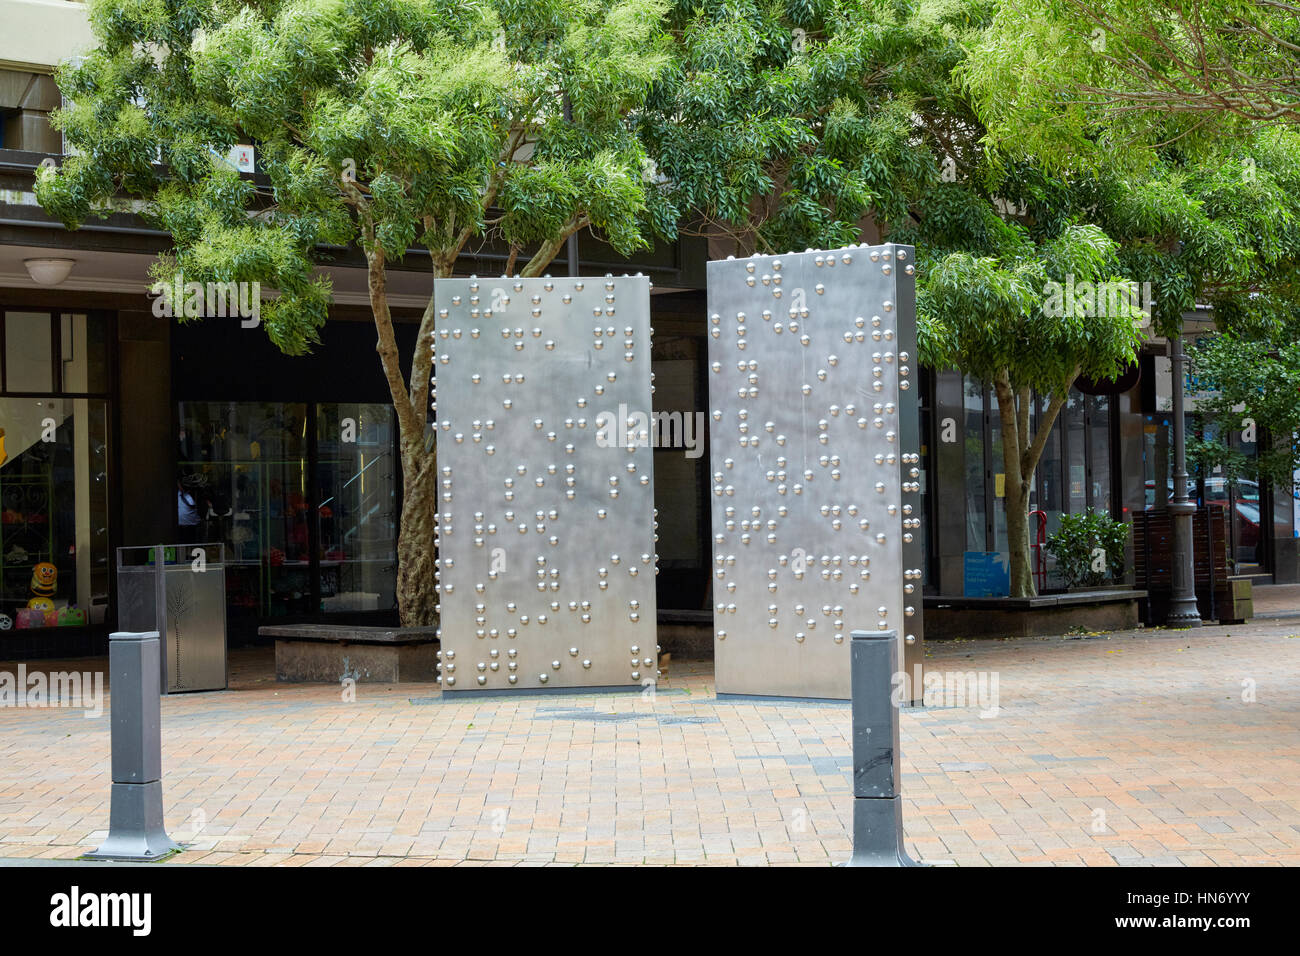 Invisible City sculpture by Anton Parsons, Lambton Quay, Wellington, New Zealand - Stock Image